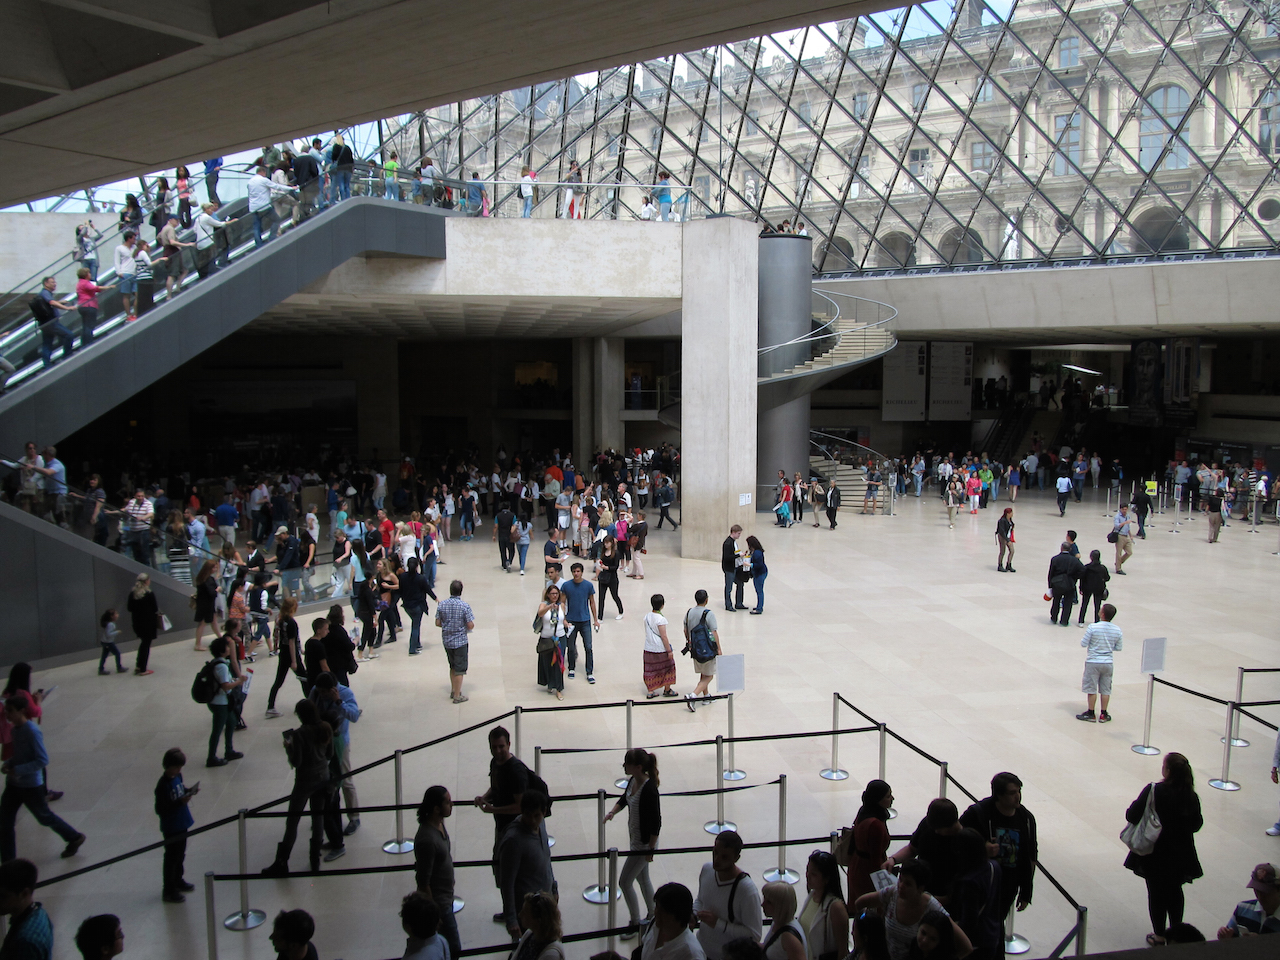 University Of Tulsa Jobs >> Angered Archaeologists Allow Thousands to Enter the Louvre for Free